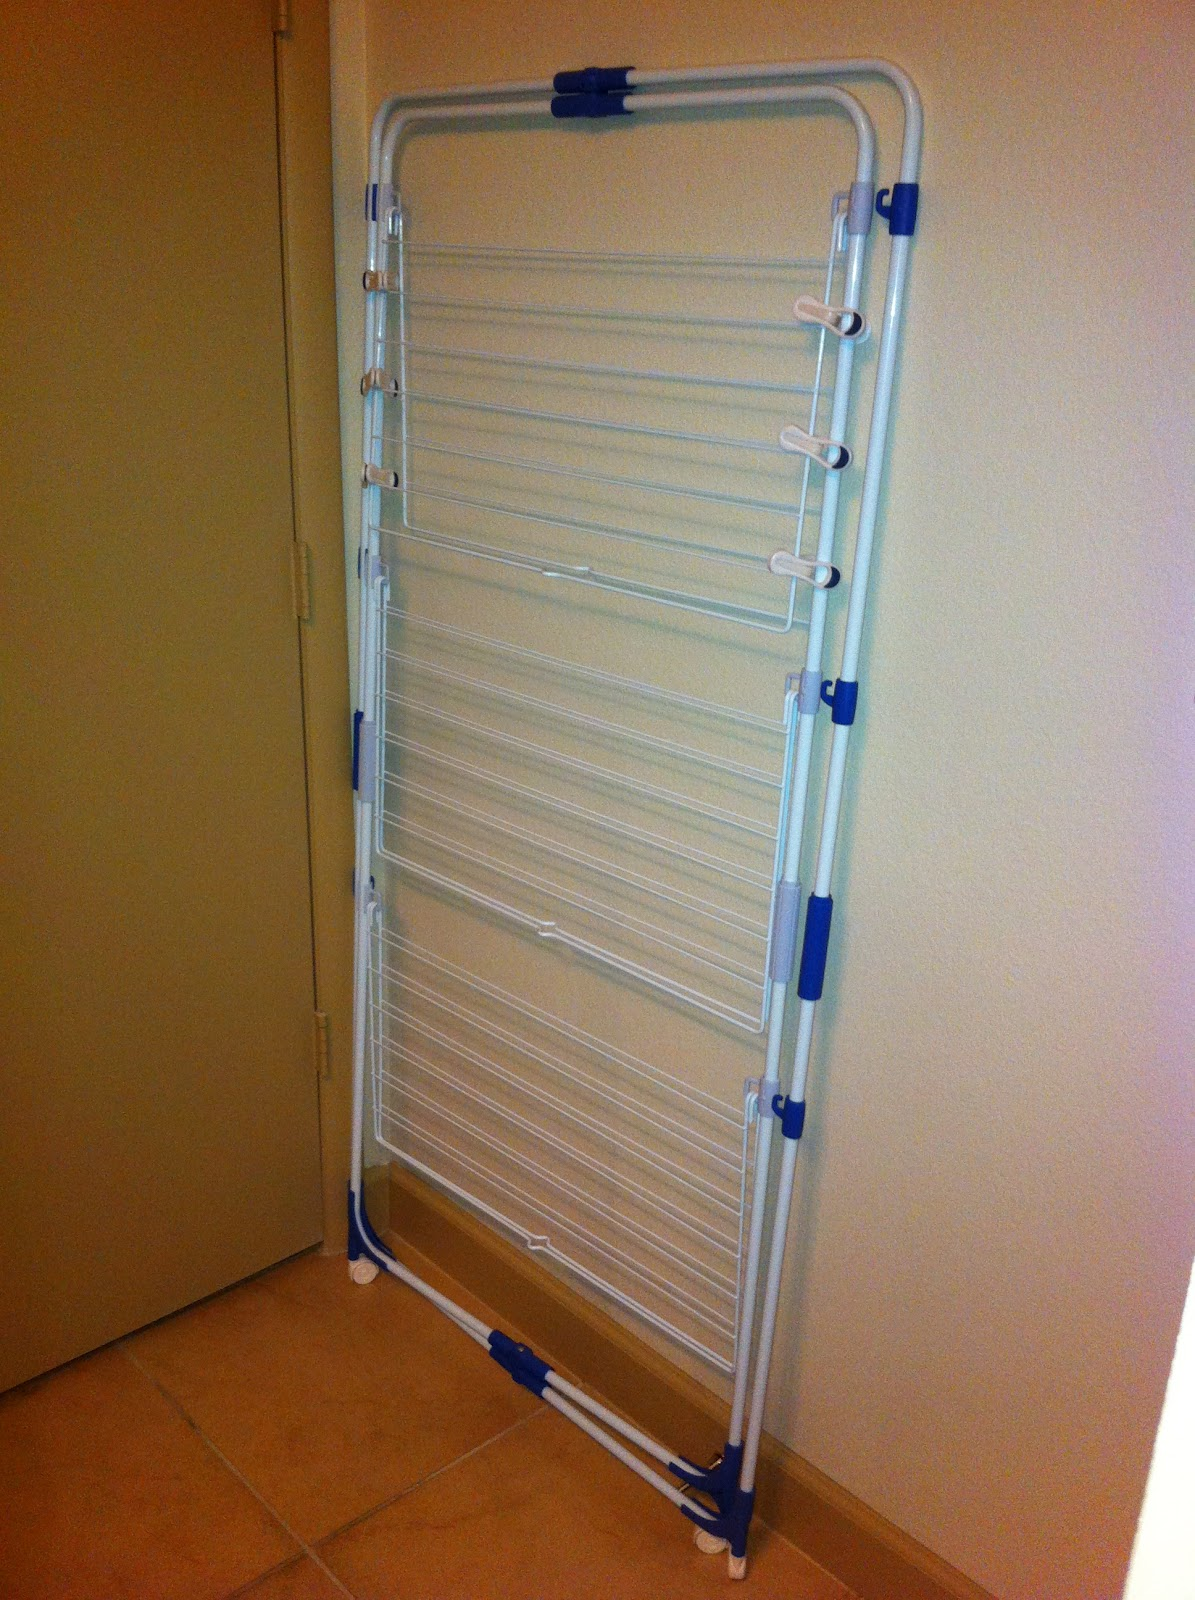 Small space solutions a great space saving drying rack - Laundry drying racks for small spaces property ...